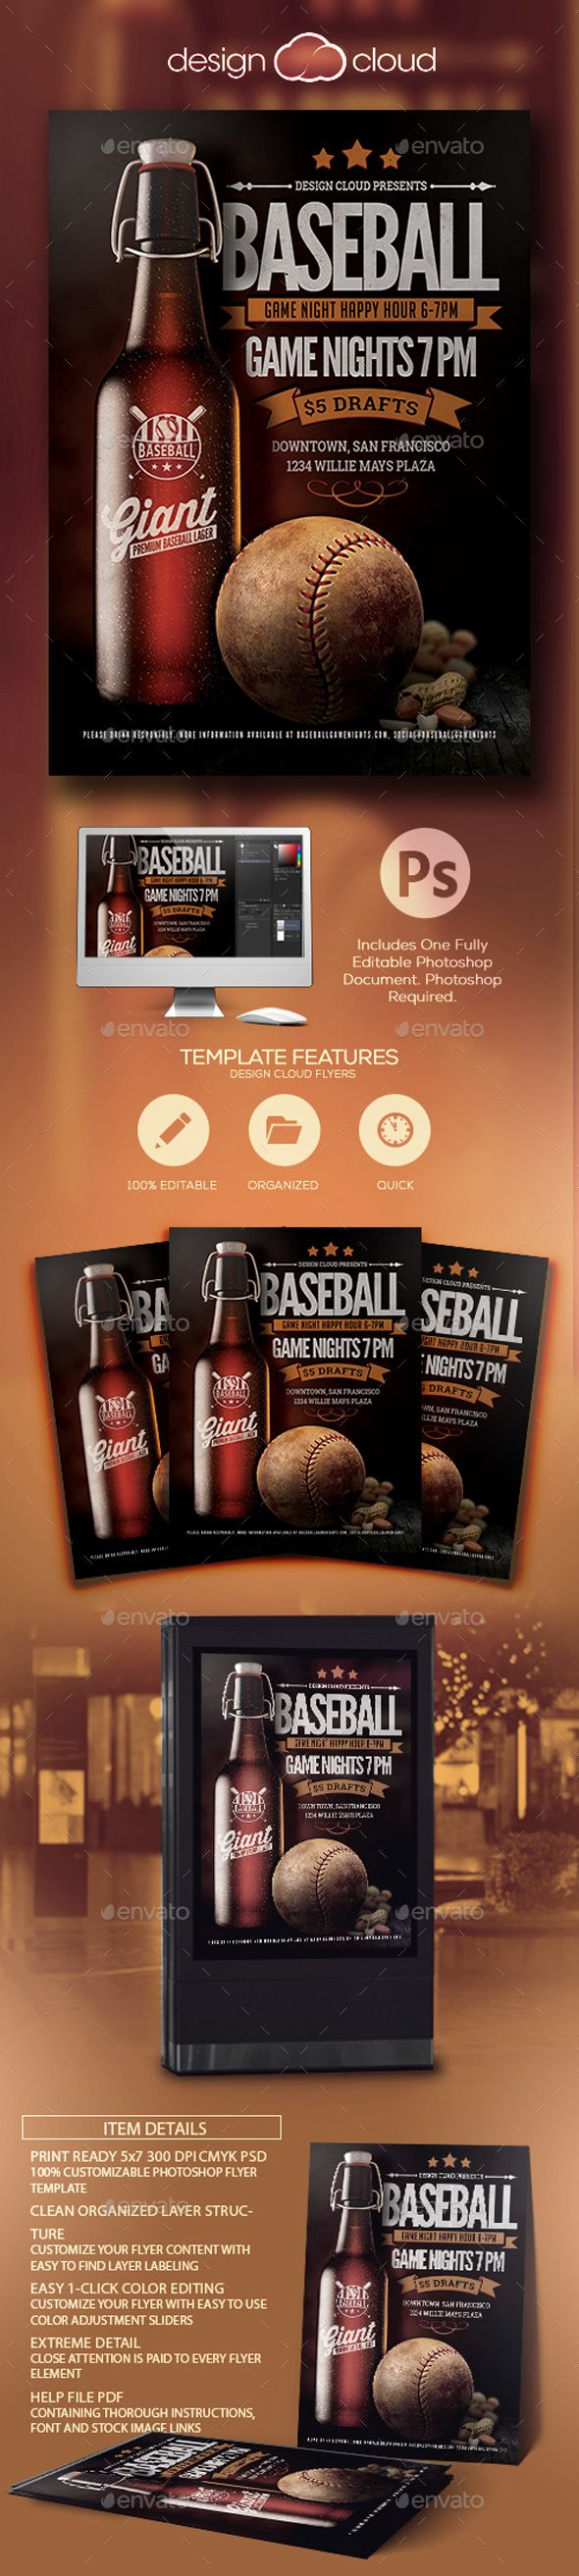 Baseball Sports Bar Promo Flyer Template - Sports Events#Design #Flyer #Template Download